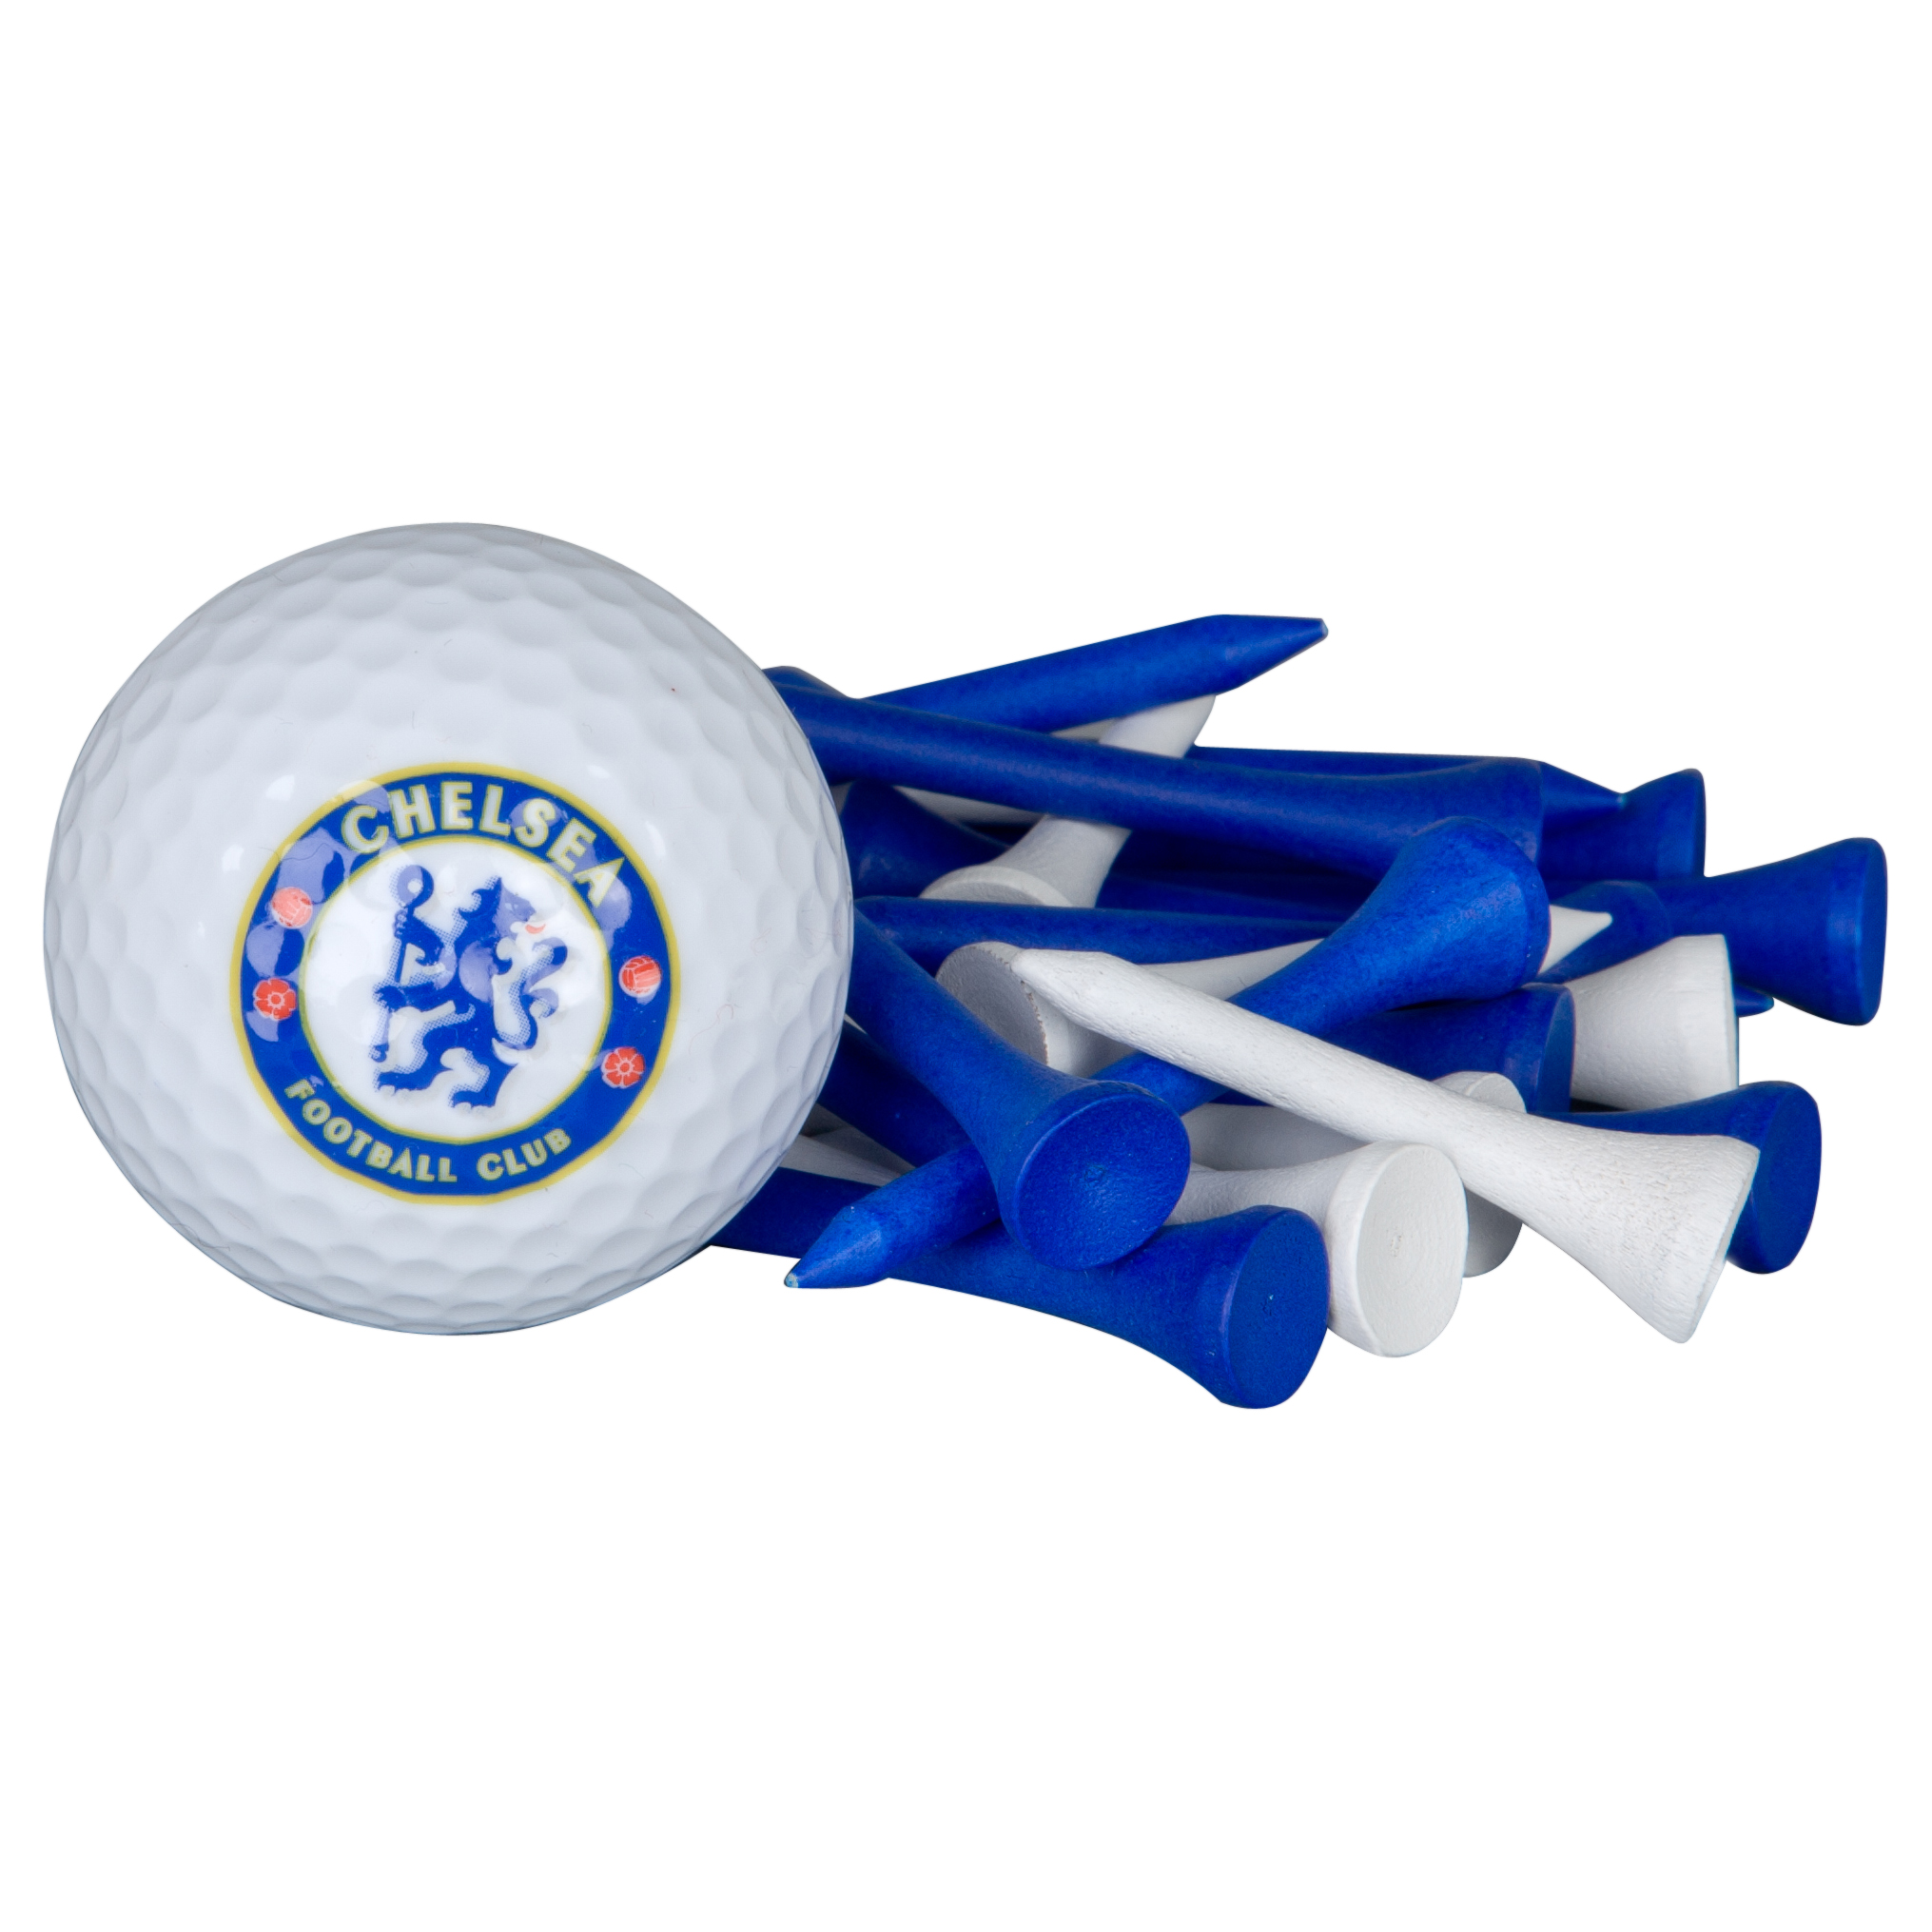 Chelsea Golf Gift Ball and Tee Set